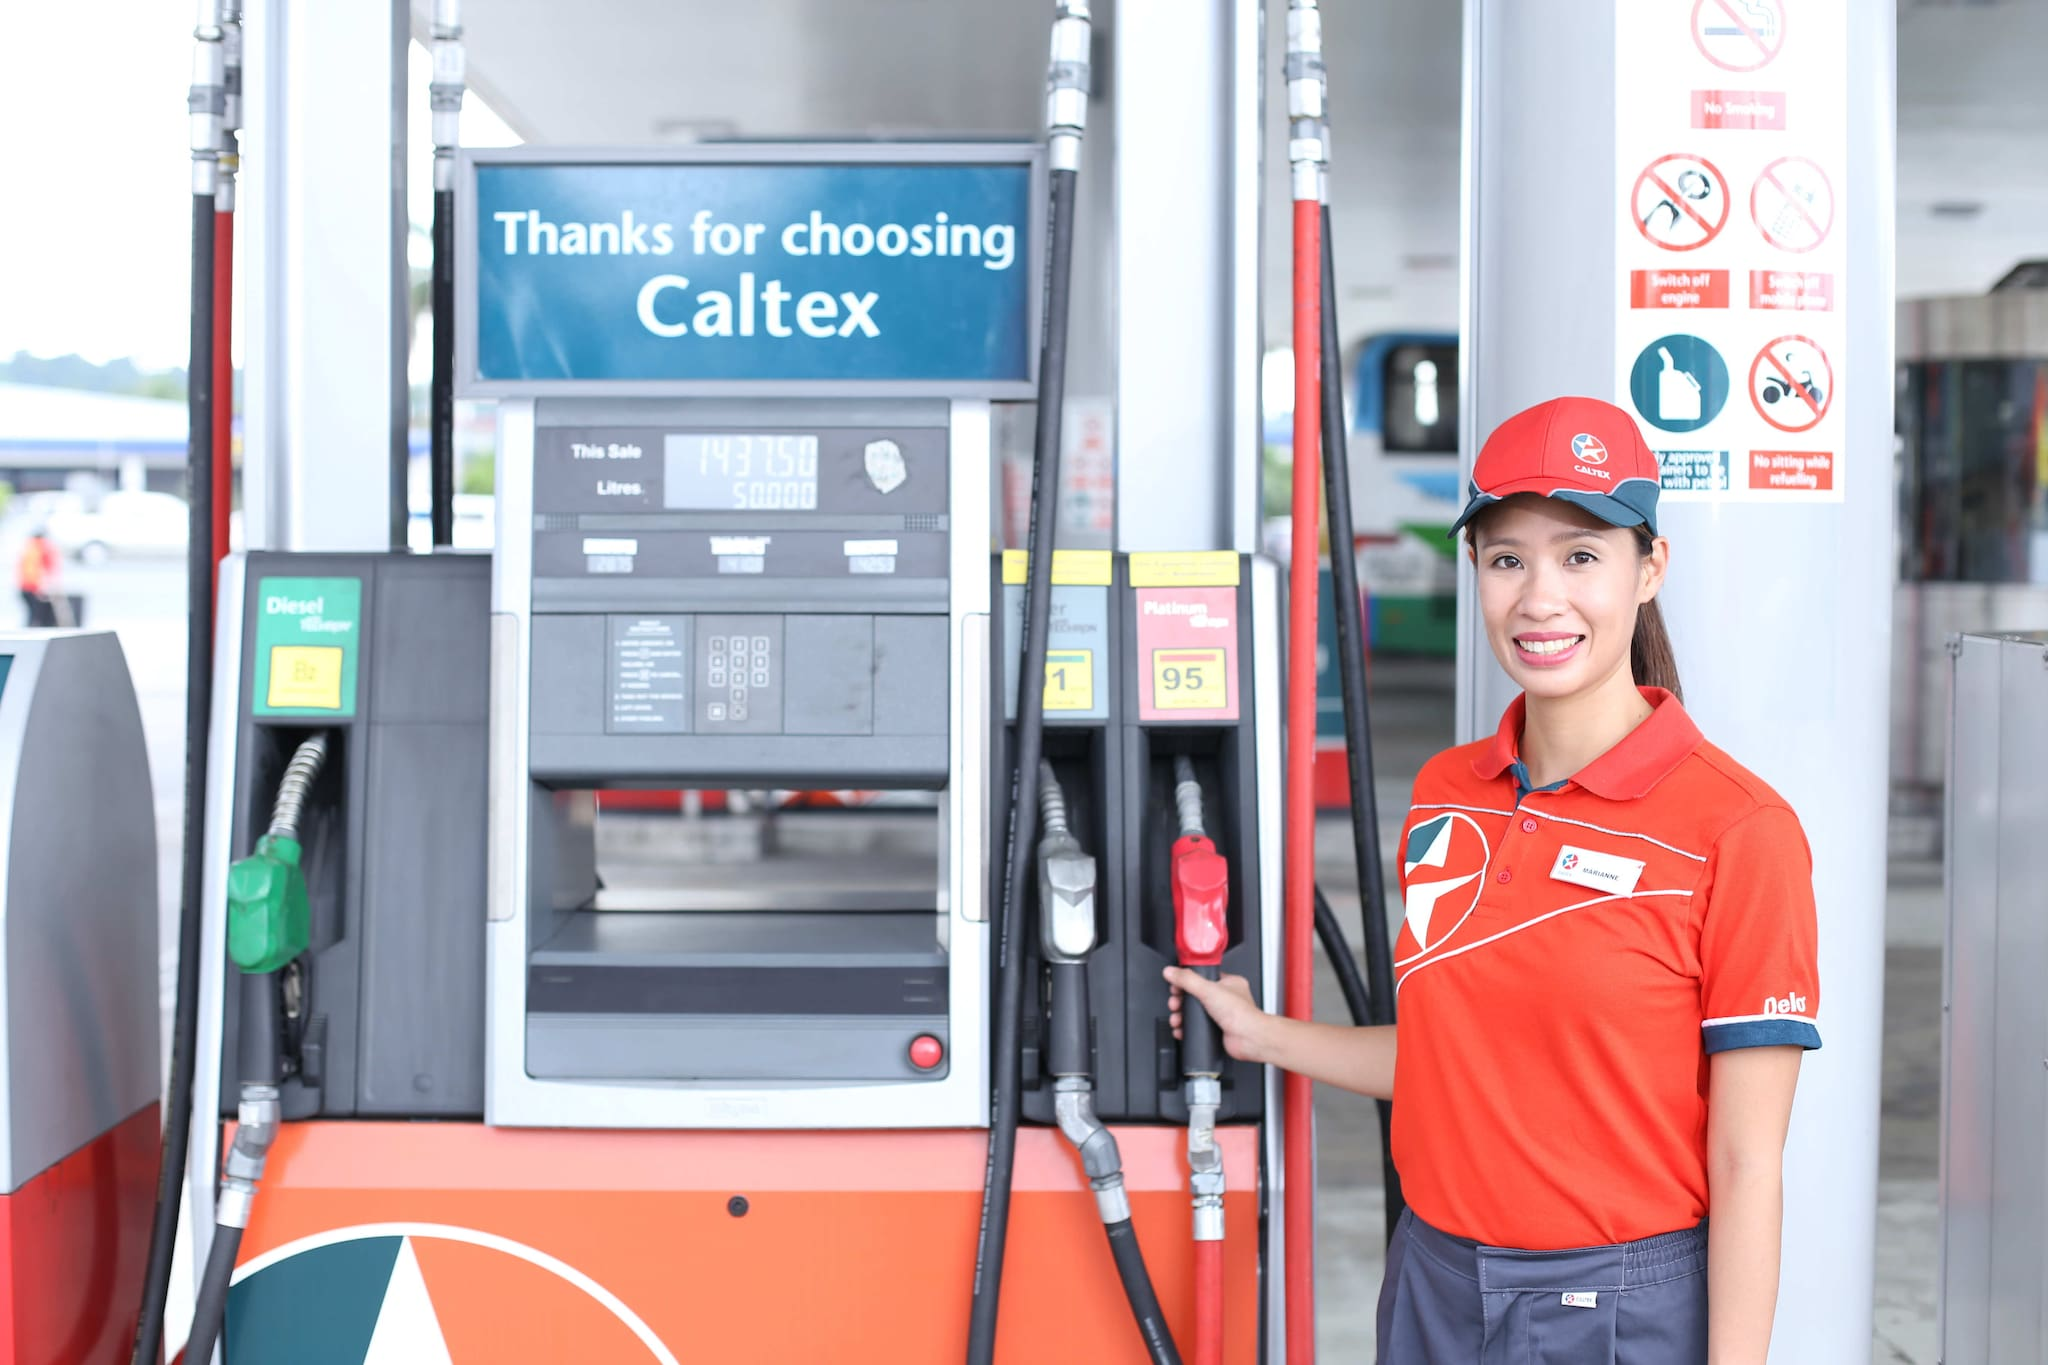 Undas 2017: Caltex to Give Fuel Discounts, Free Vehicle Check-Up, Medical Assistance